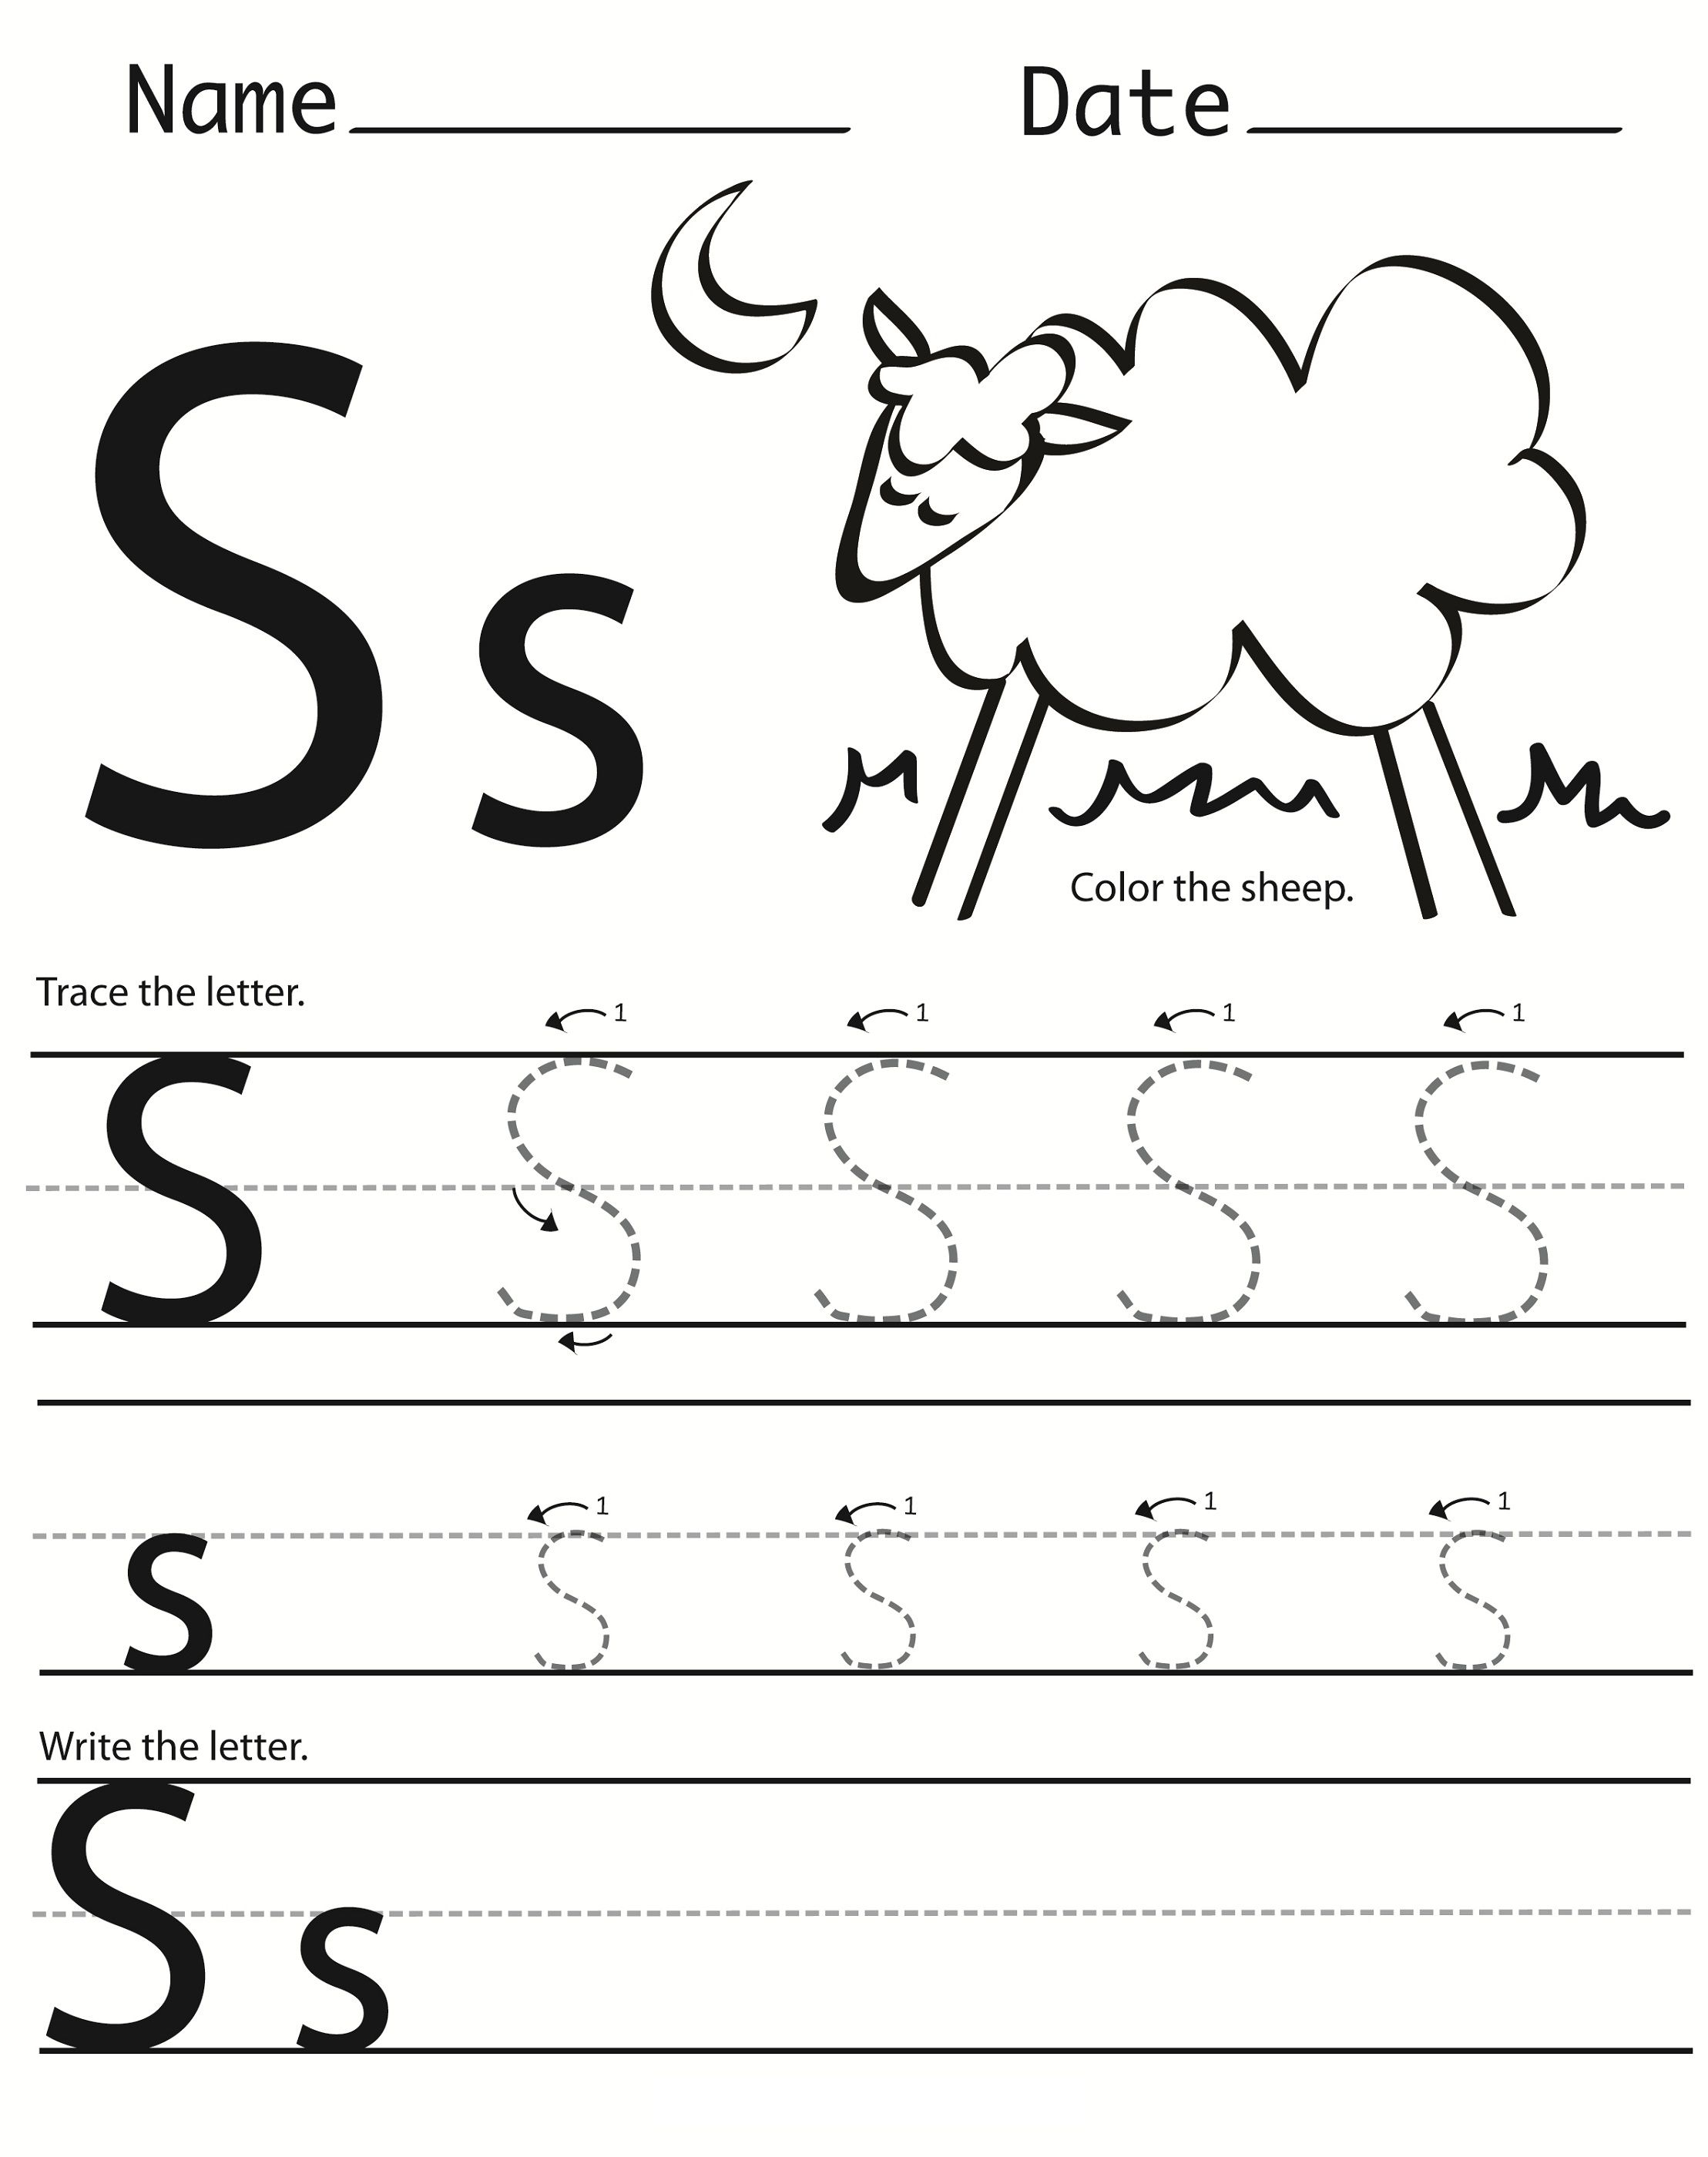 Free Letter S Worksheet Tracing Coloring Writing More Worksheets N in addition  also Letter S Worksheets   Recognize  Trace    Print in addition Trace The Letter K Letter K Letter Motor Trace Letters Worksheet Pdf additionally Alphabet Worksheets as well Printing Letter S Worksheet   All Kids  work moreover 19 Cool Letter S Worksheets   KittyBaby moreover Pre Alphabet Printable Worksheets How To Write Lowercase likewise Tracing Letter S Letter S Worksheet Tracing Letters Editable also Phonics Letter S Worksheets Pre Worksheet Free Printable Made furthermore Free Printable Tracing letter S worksheets for pre   Baby E as well Letter S Worksheets for Pre   Siteraven additionally  furthermore Kindergarten Tracing Letters Worksheets   K5 Learning furthermore  besides Letter S Tracing Worksheets   Itsy Bitsy Fun. on trace the letter s worksheets